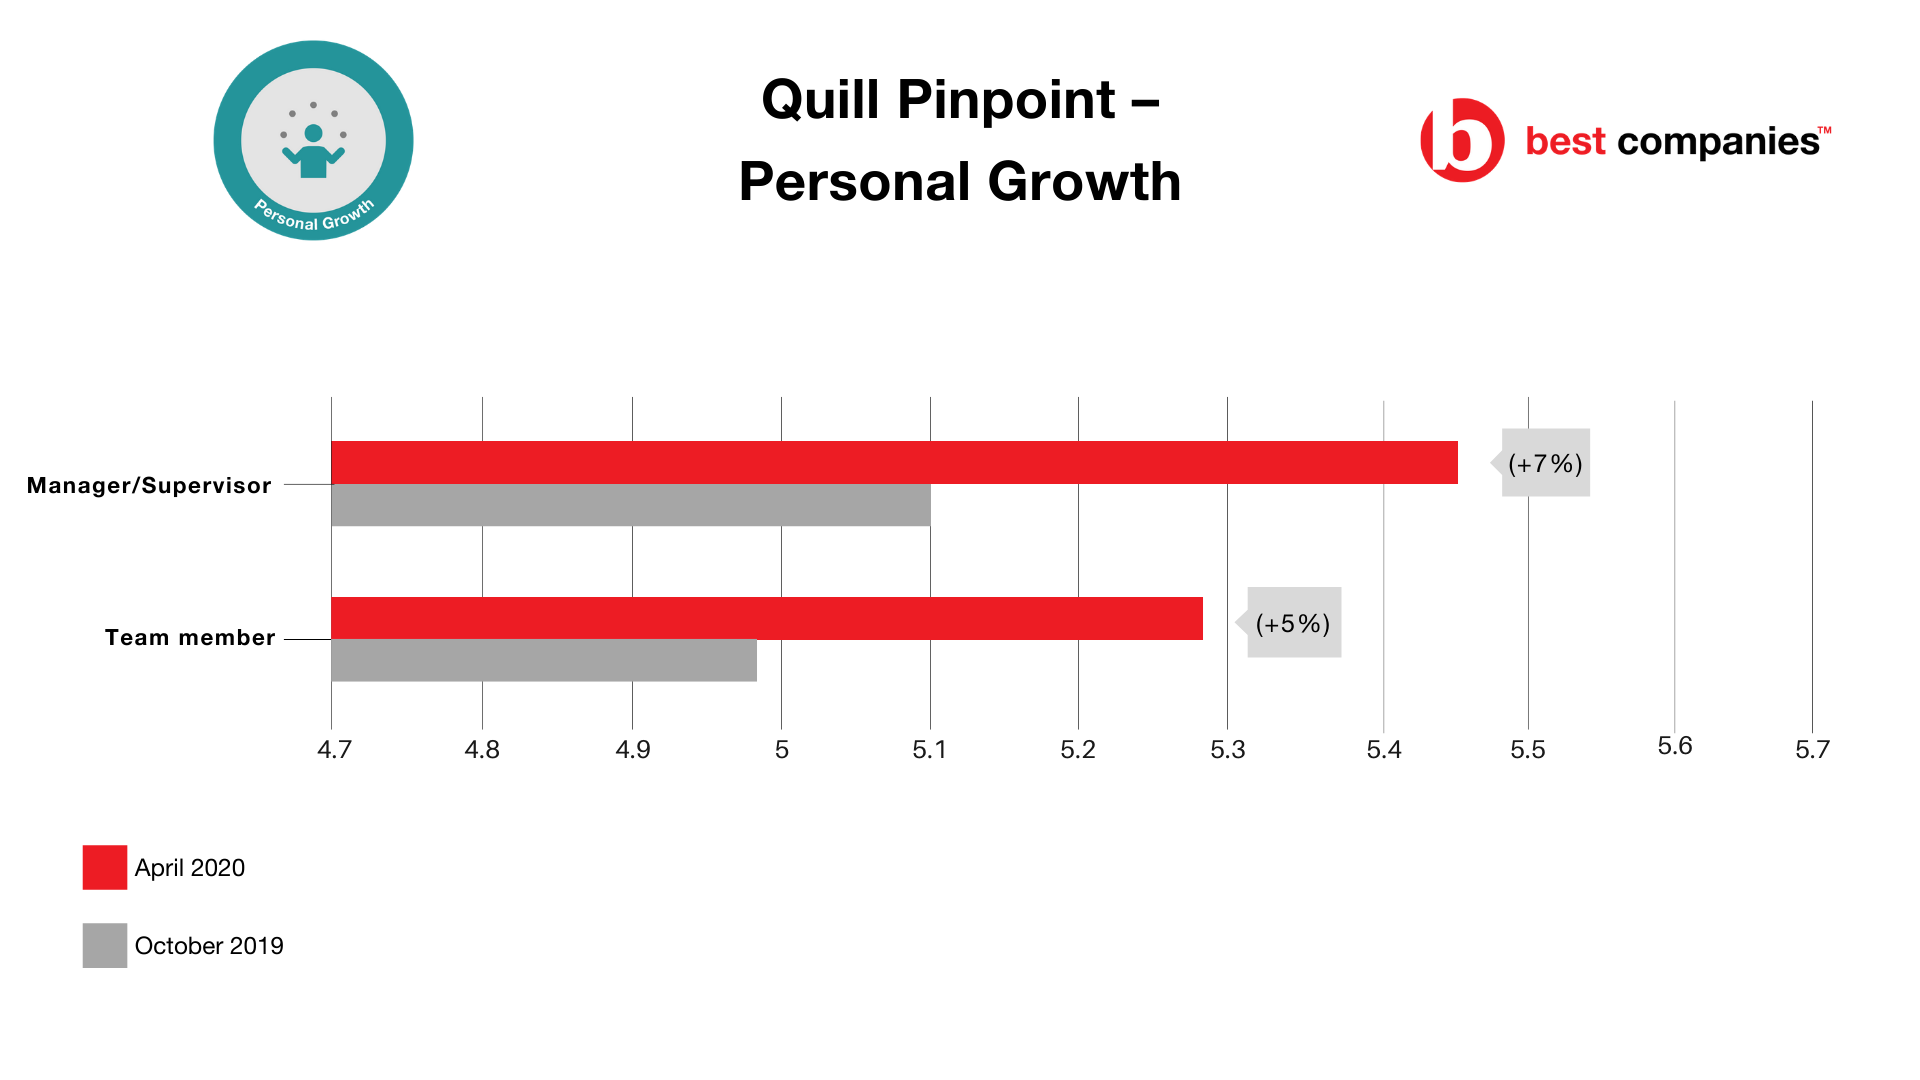 Quill Pinpoint - Personal Growth Scores